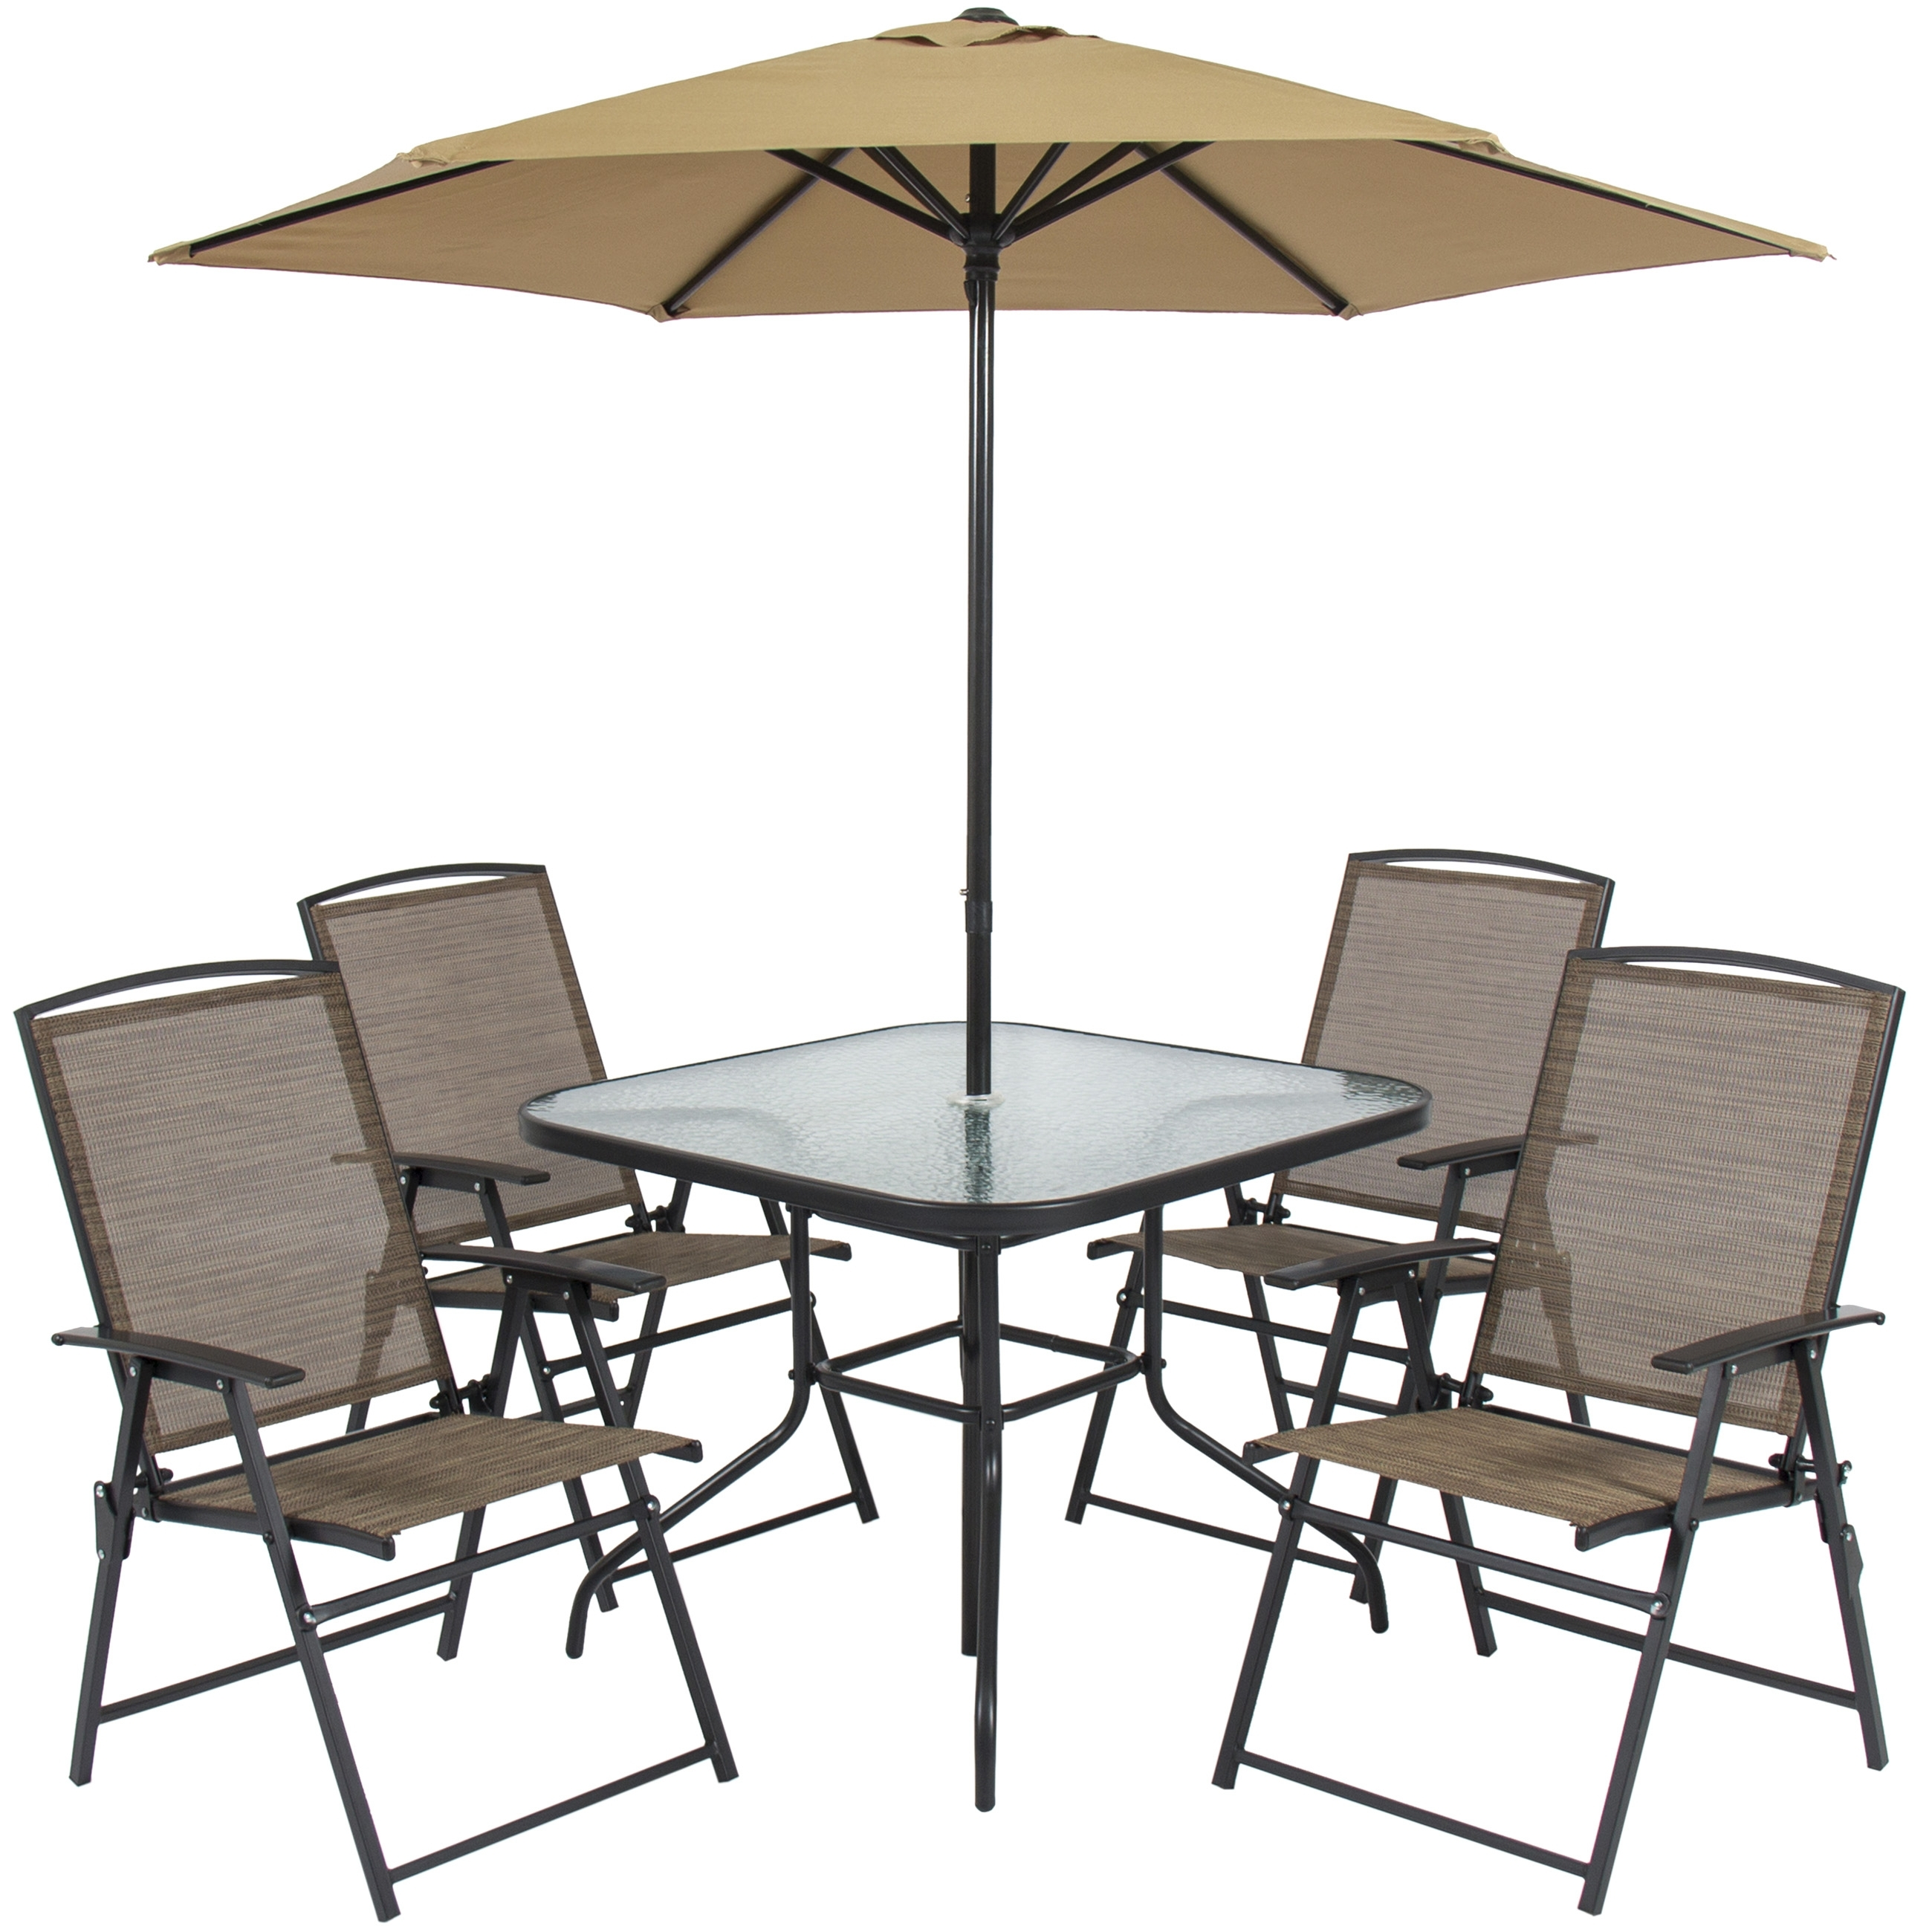 Best Choice Products 6 Piece Outdoor Folding Patio Dining Set W Inside Trendy 8 Seat Outdoor Dining Tables (Gallery 13 of 25)